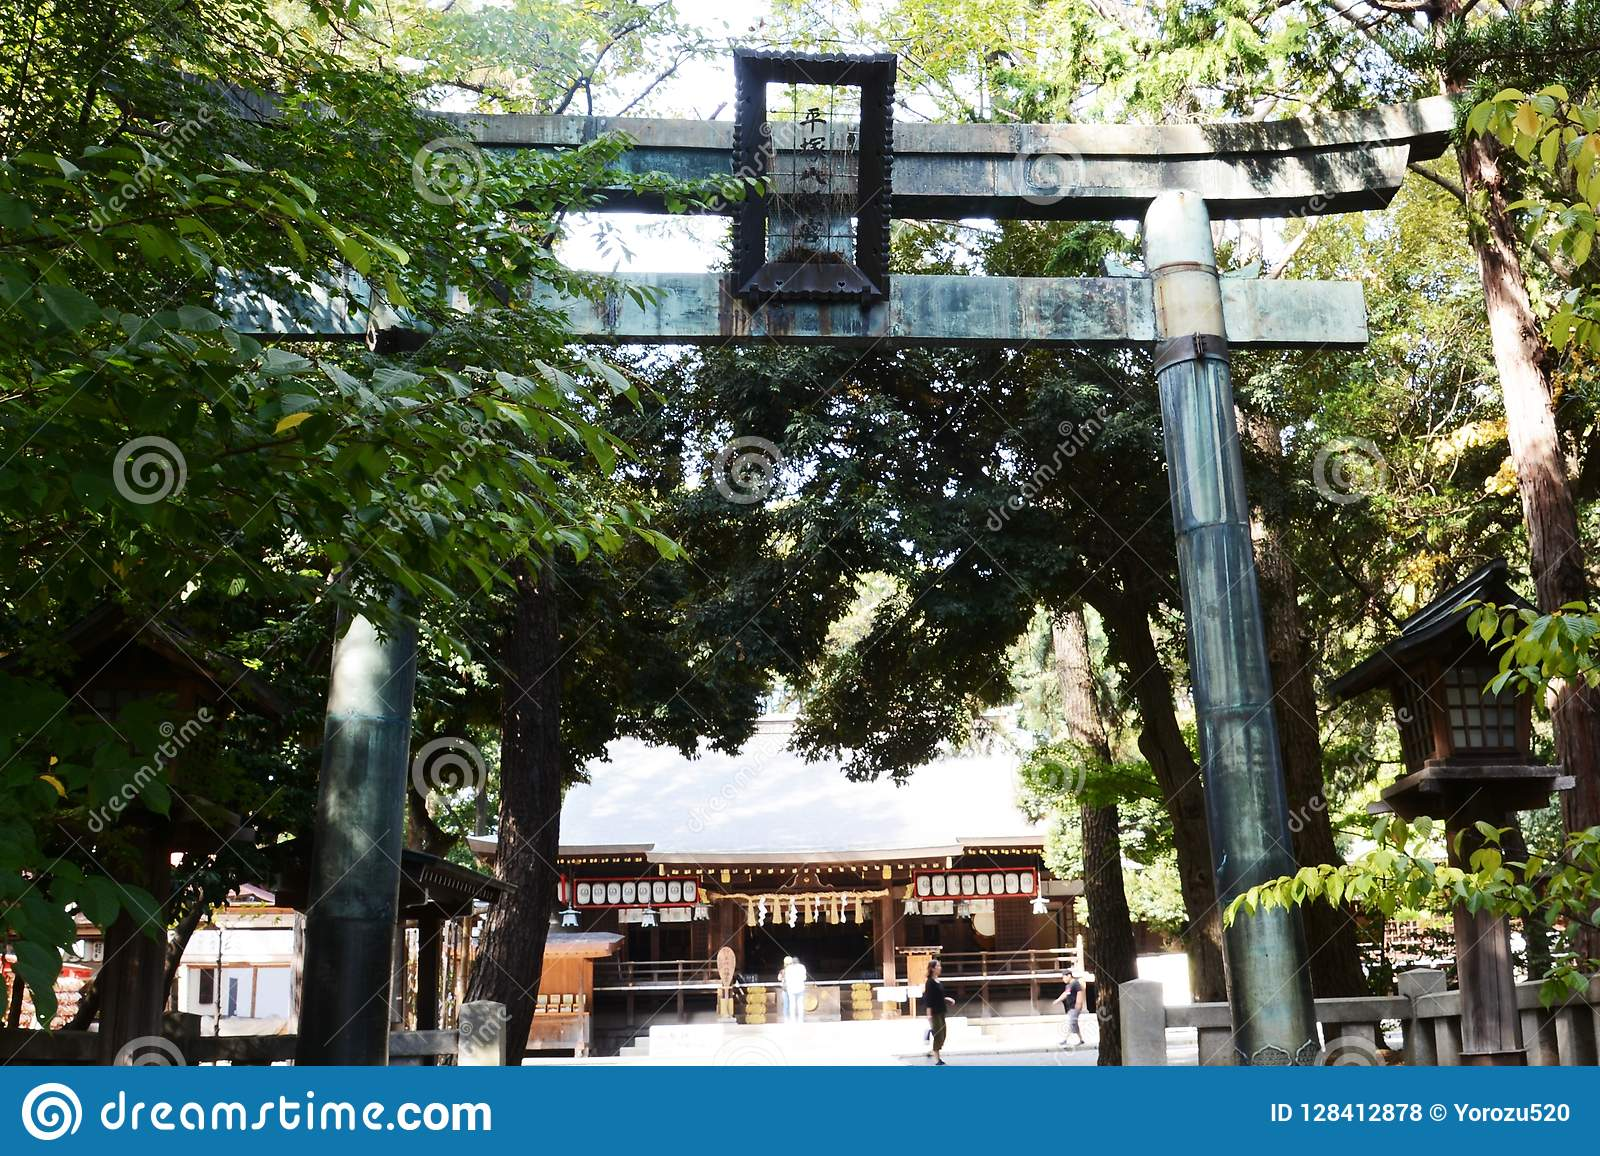 Torii gate and guardian dogs of Shinto shrine